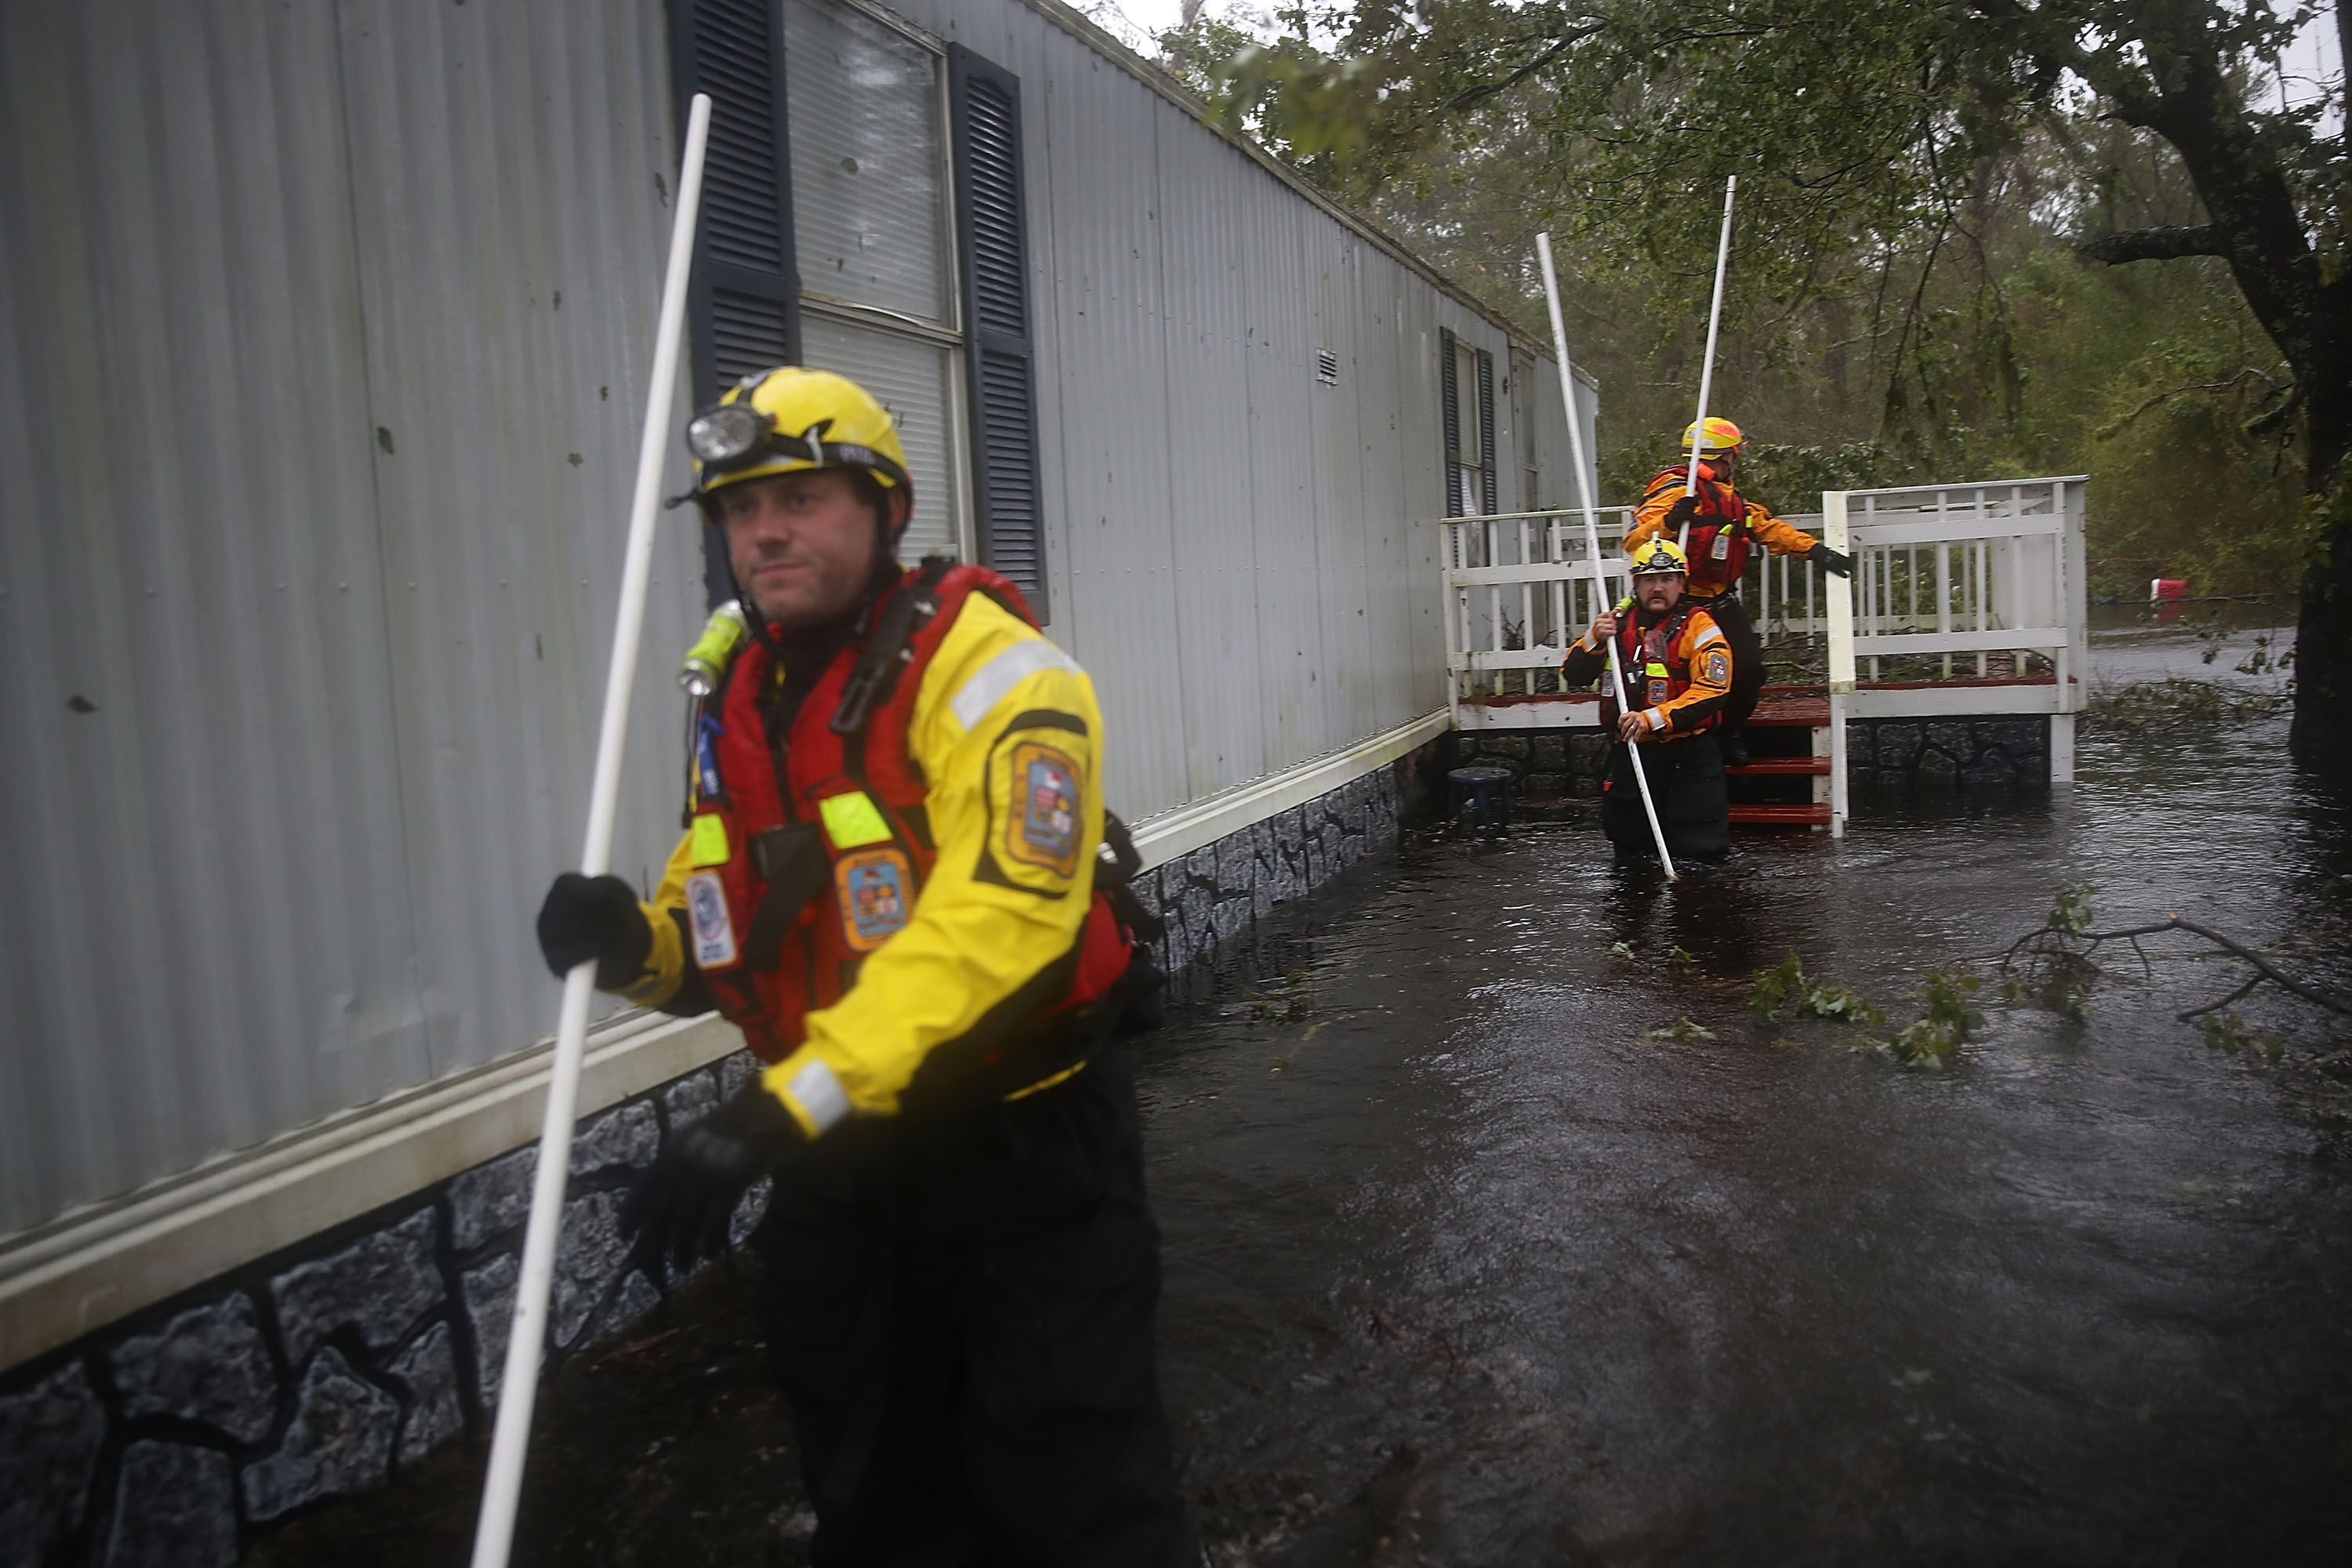 Fire rescue workers wading through water.